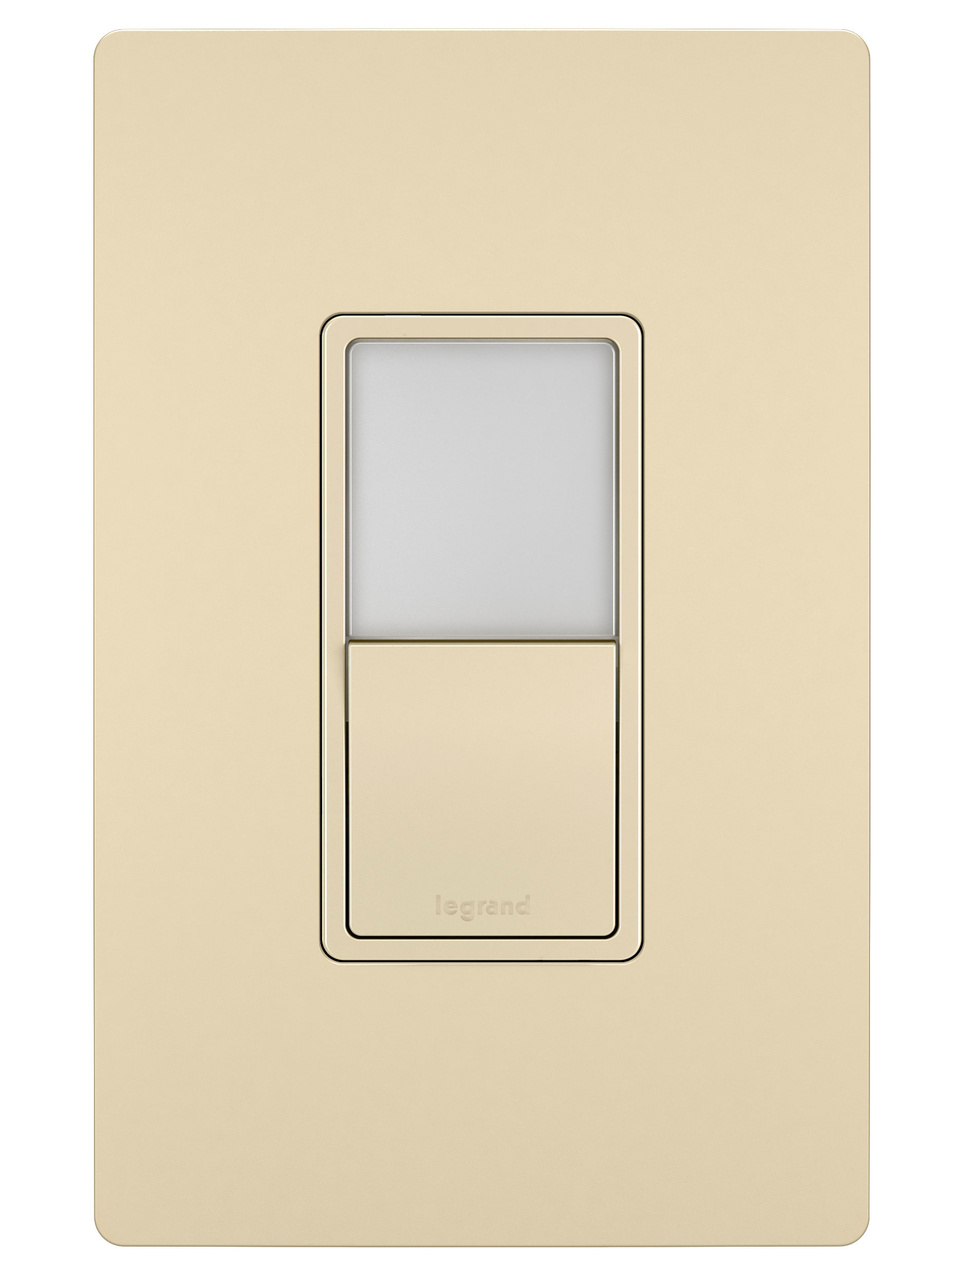 Night Light with Single-Pole, 3-Way Switch, Ivory